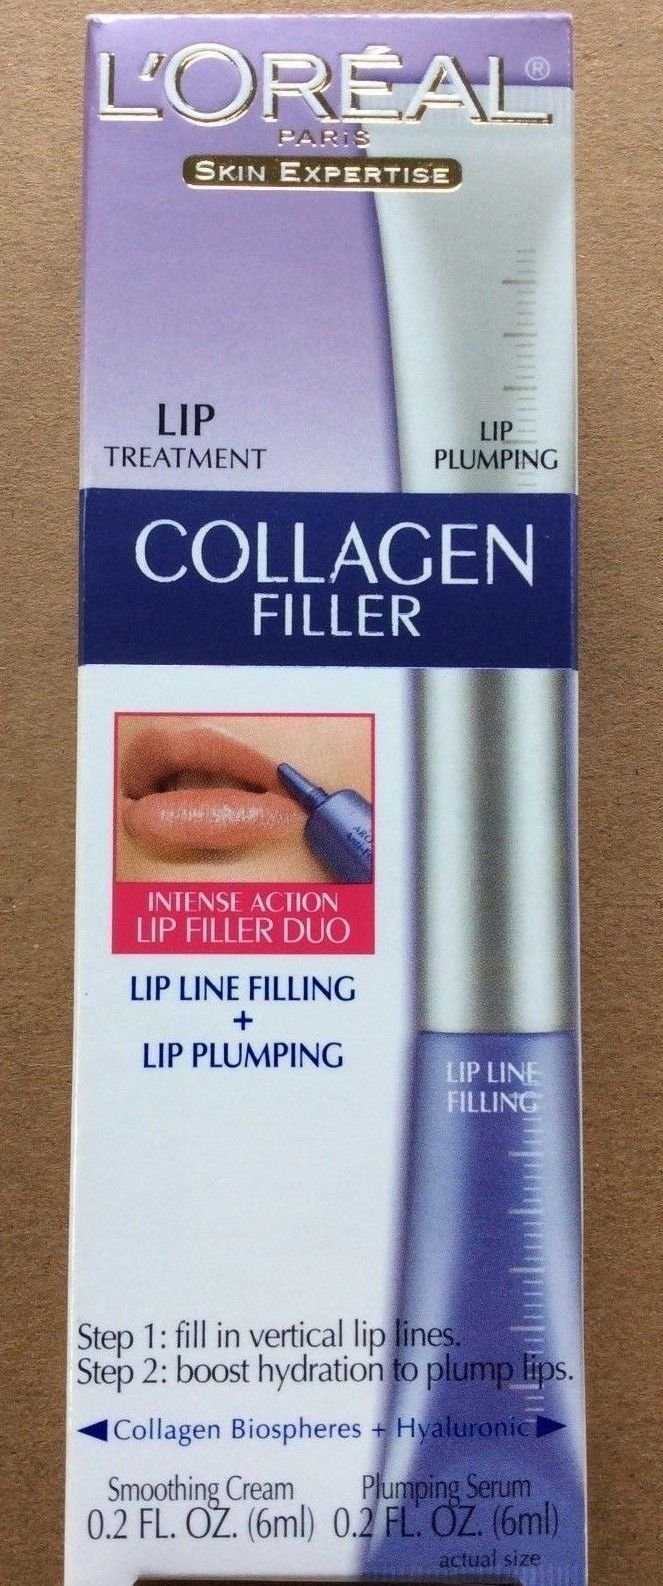 L'Oreal Paris Skin Expertise Lip Treatment Collagen Filler In Box.